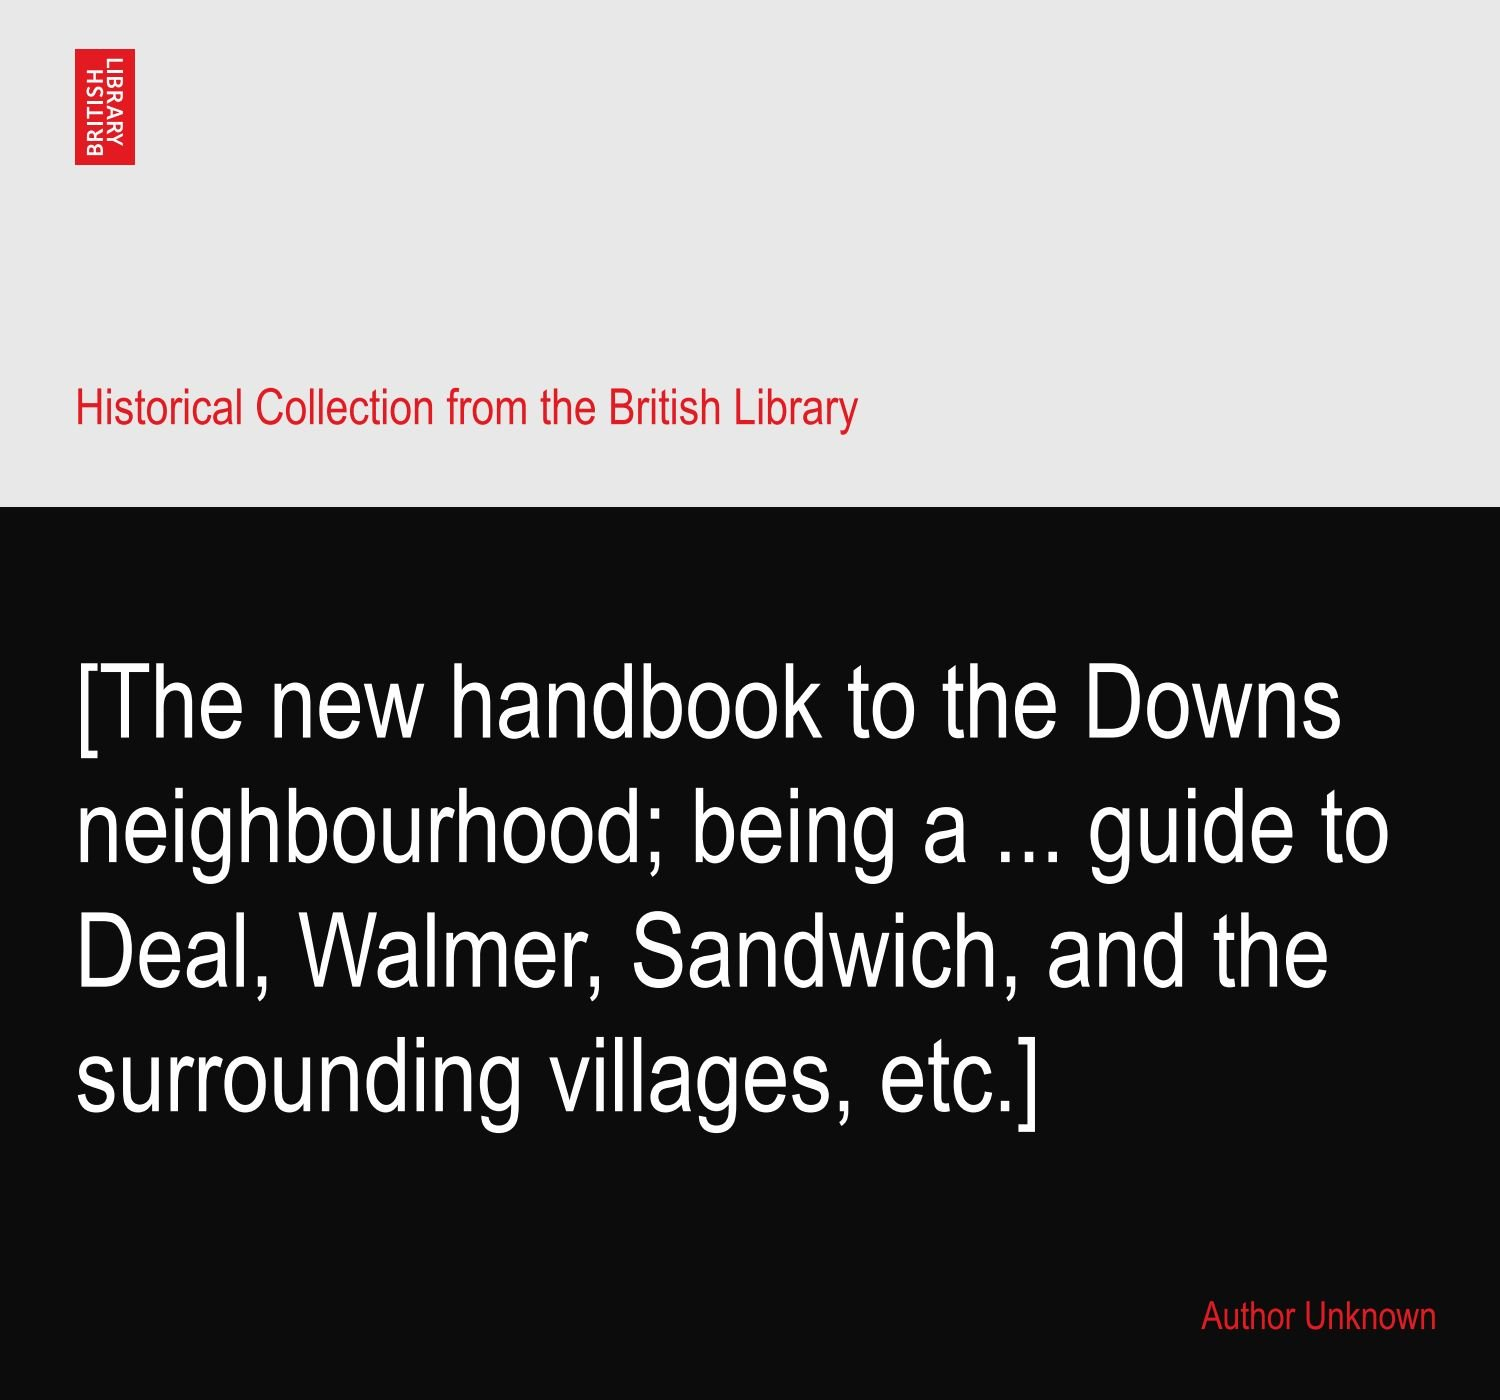 Download [The new handbook to the Downs neighbourhood; being a ... guide to Deal, Walmer, Sandwich, and the surrounding villages, etc.] pdf